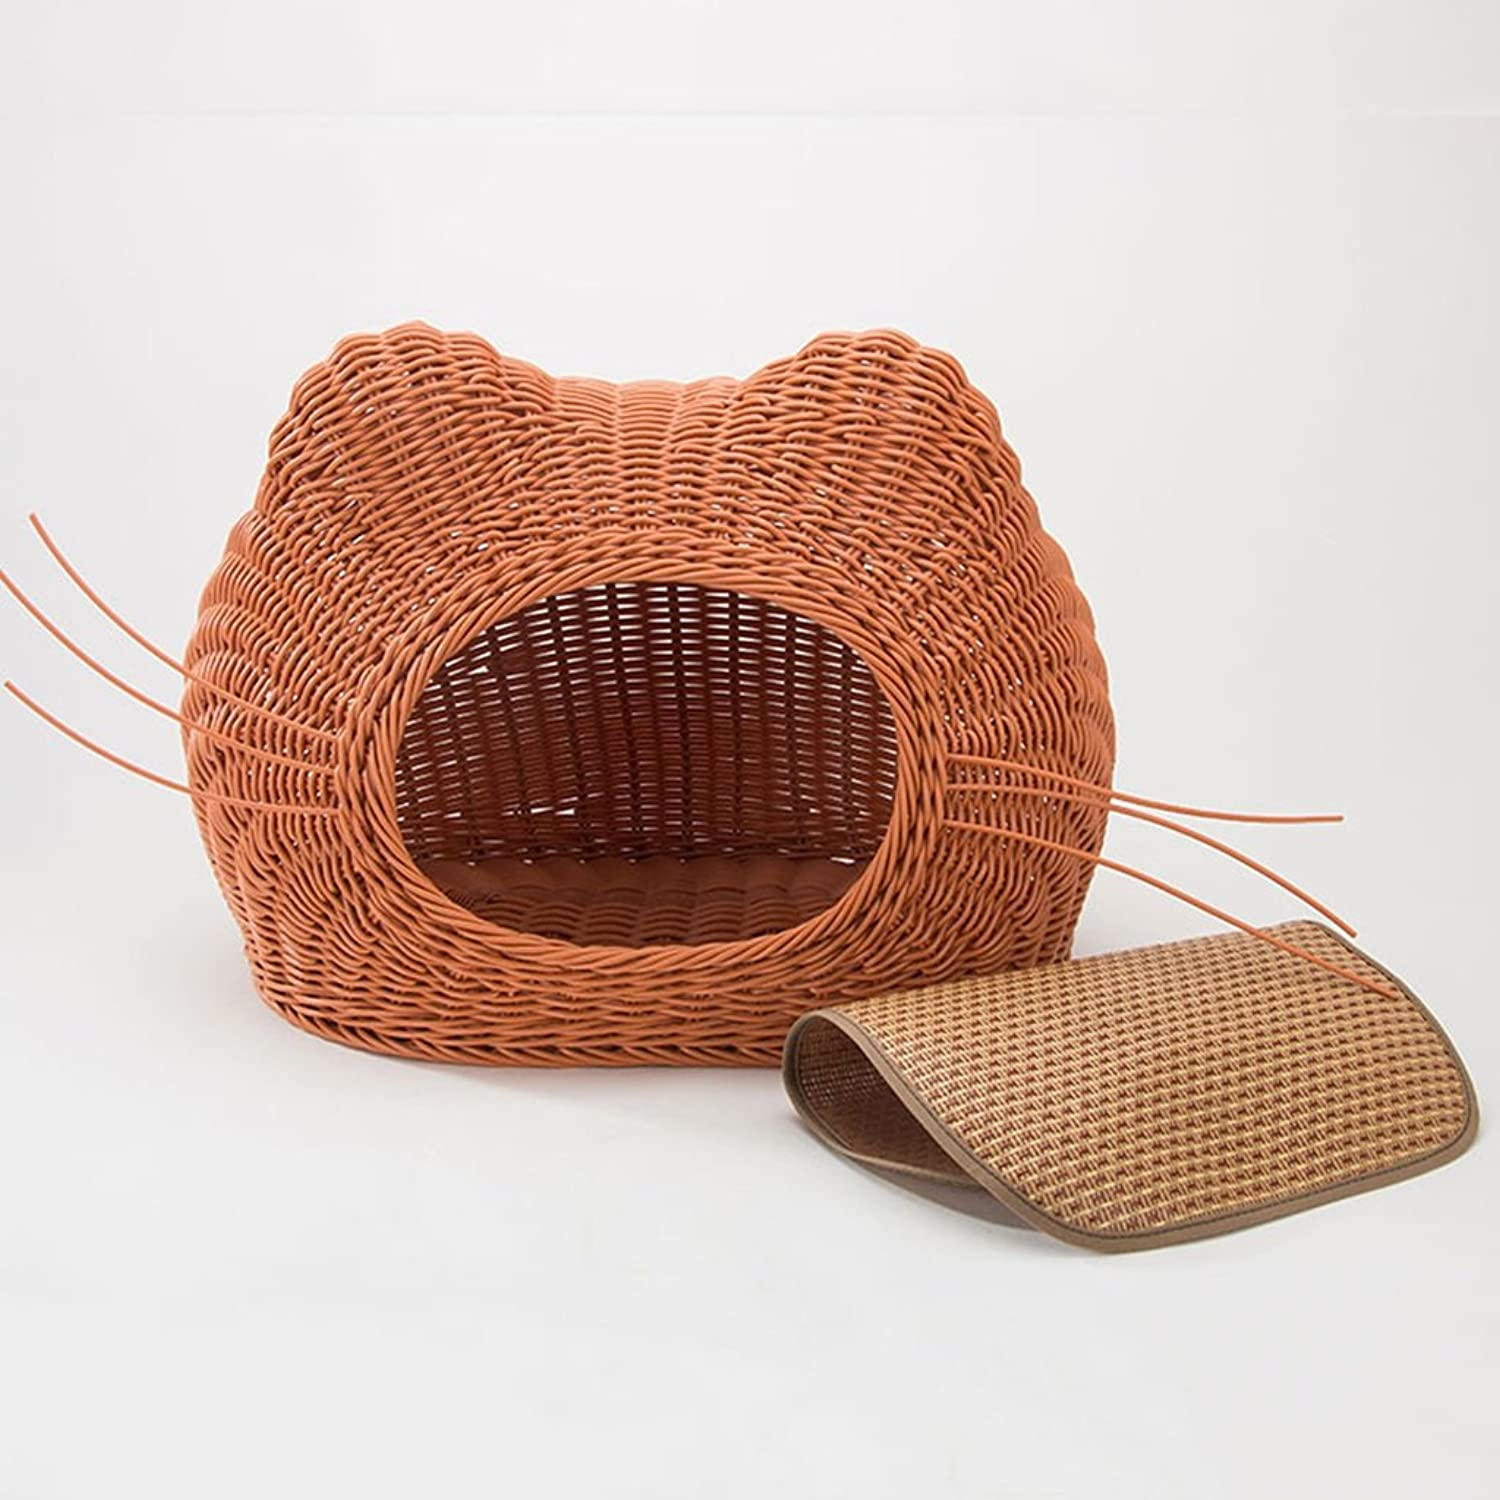 Cani Bed and Furniture Bed Blankets Rattan cat Litter Summer Enclosed cat House cat Pet Bed Doghouse Kitty Fornits Cool Four Seasons Universal (Colore:Brown, Dimensione: 35 * 25cm)